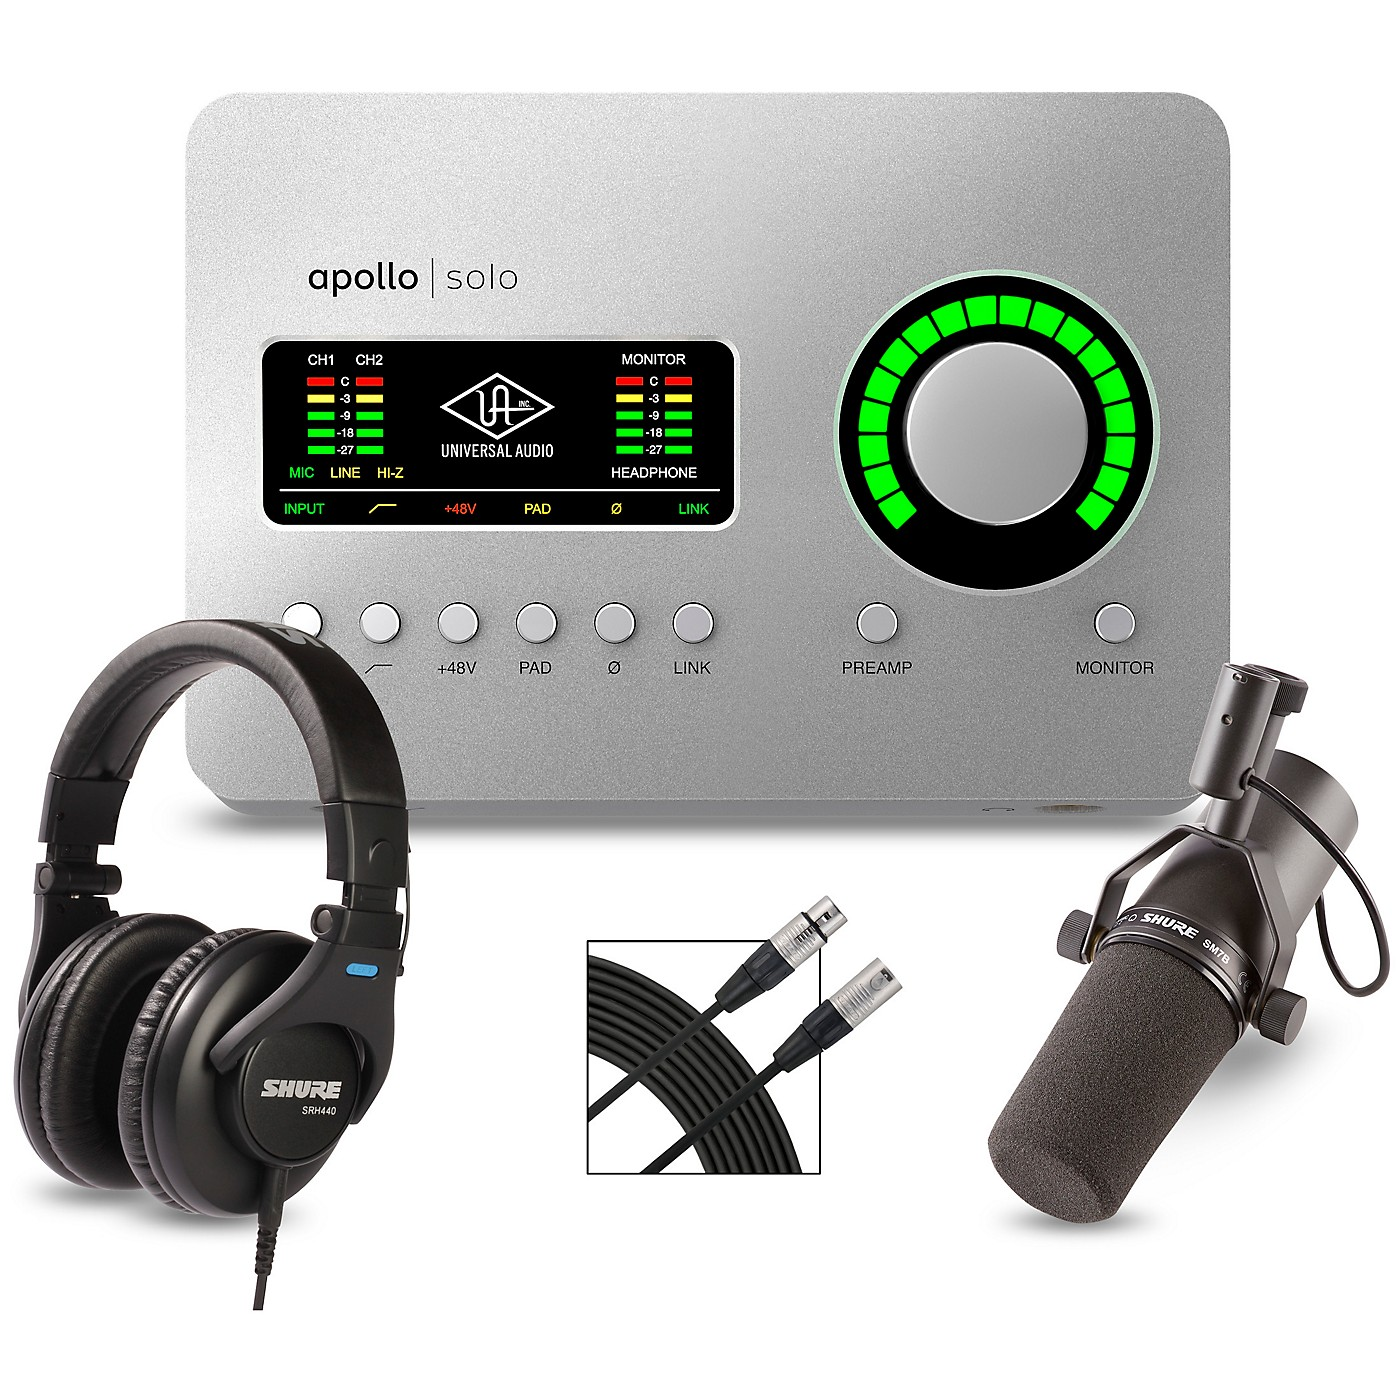 Universal Audio Apollo Solo Heritage Edition Interface With Shure SM7B, SRH 440 and Mic Cable thumbnail